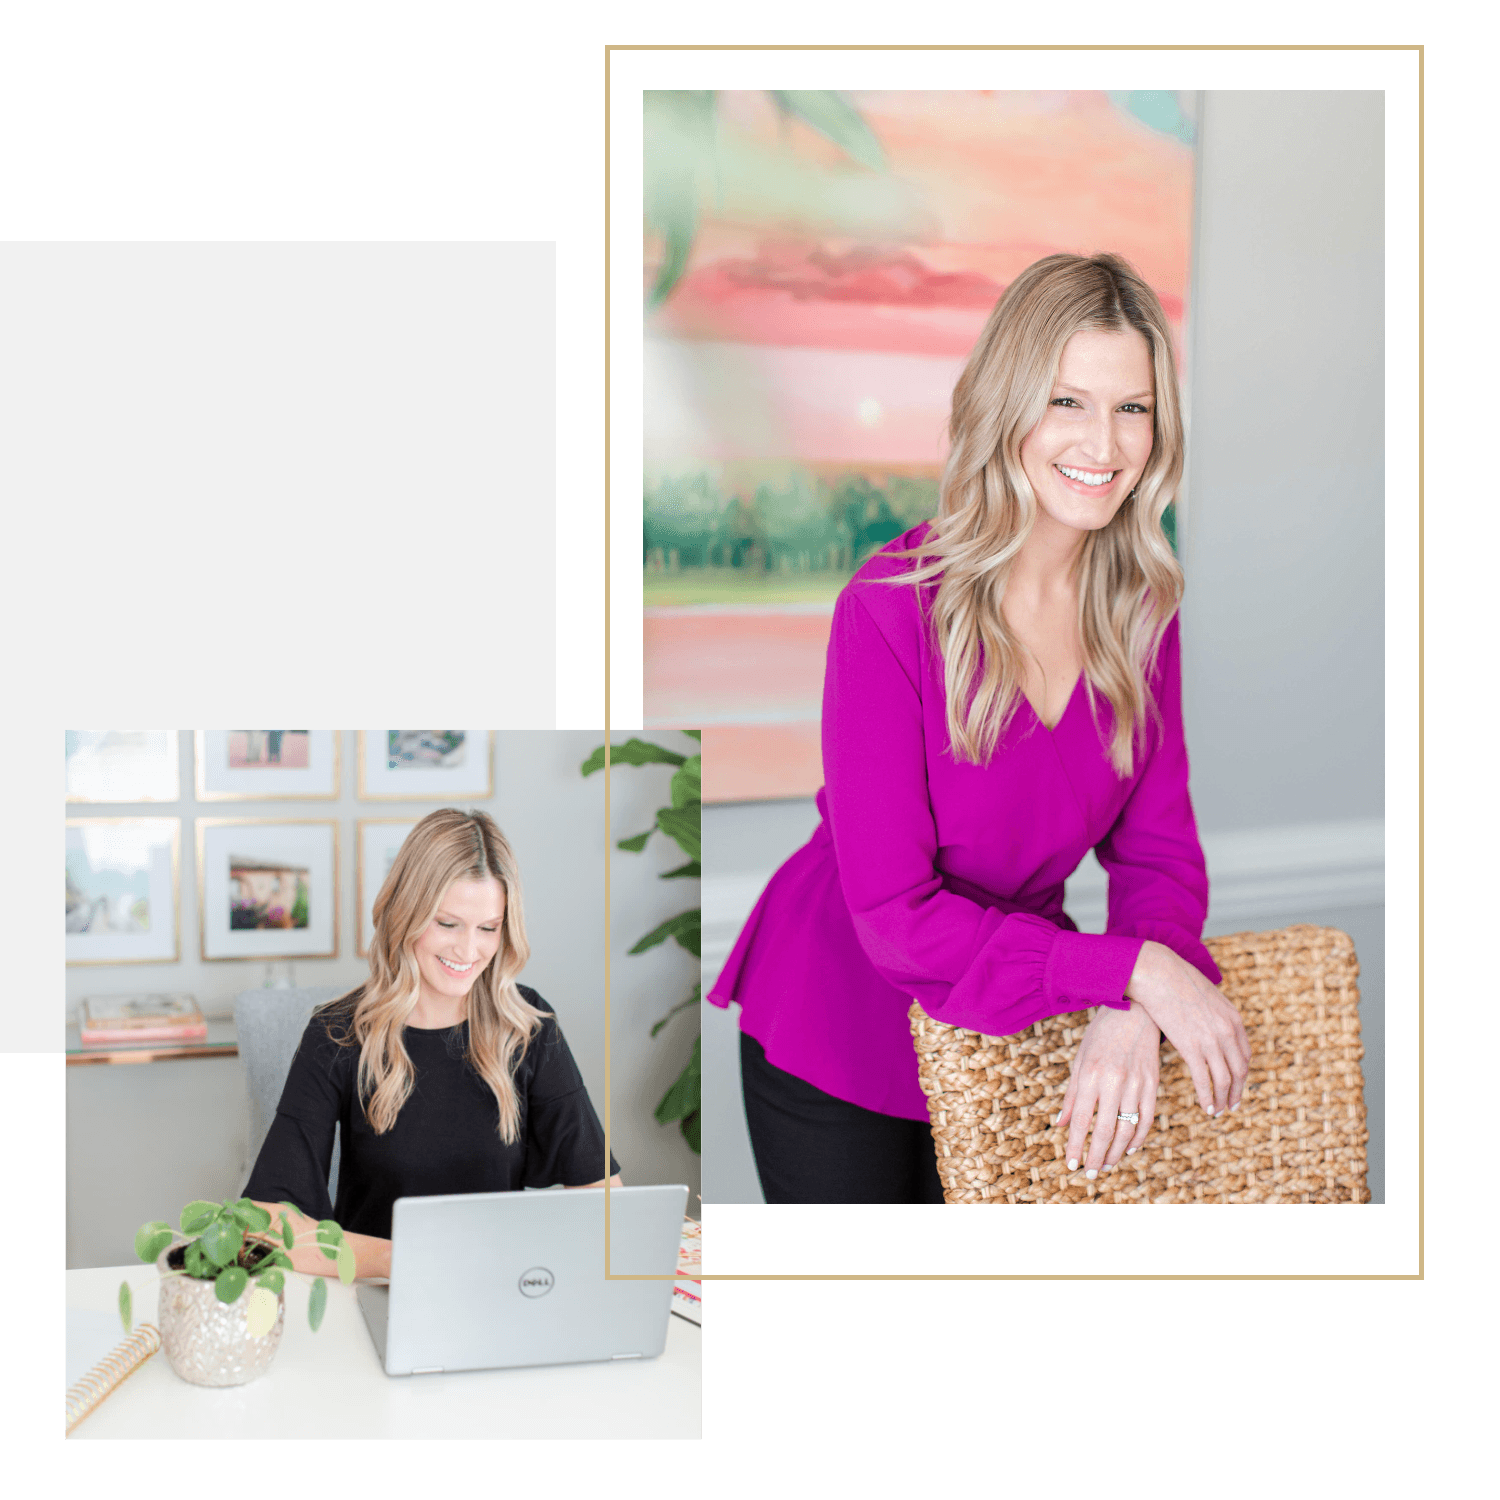 Hi! I'm BrittneyStorm Rankin. - I'm a freelance health and wellness content marketing writer who helps busy marketing and PR professionals produce high-quality content for their blogs, email newsletters, websites and social media platforms.